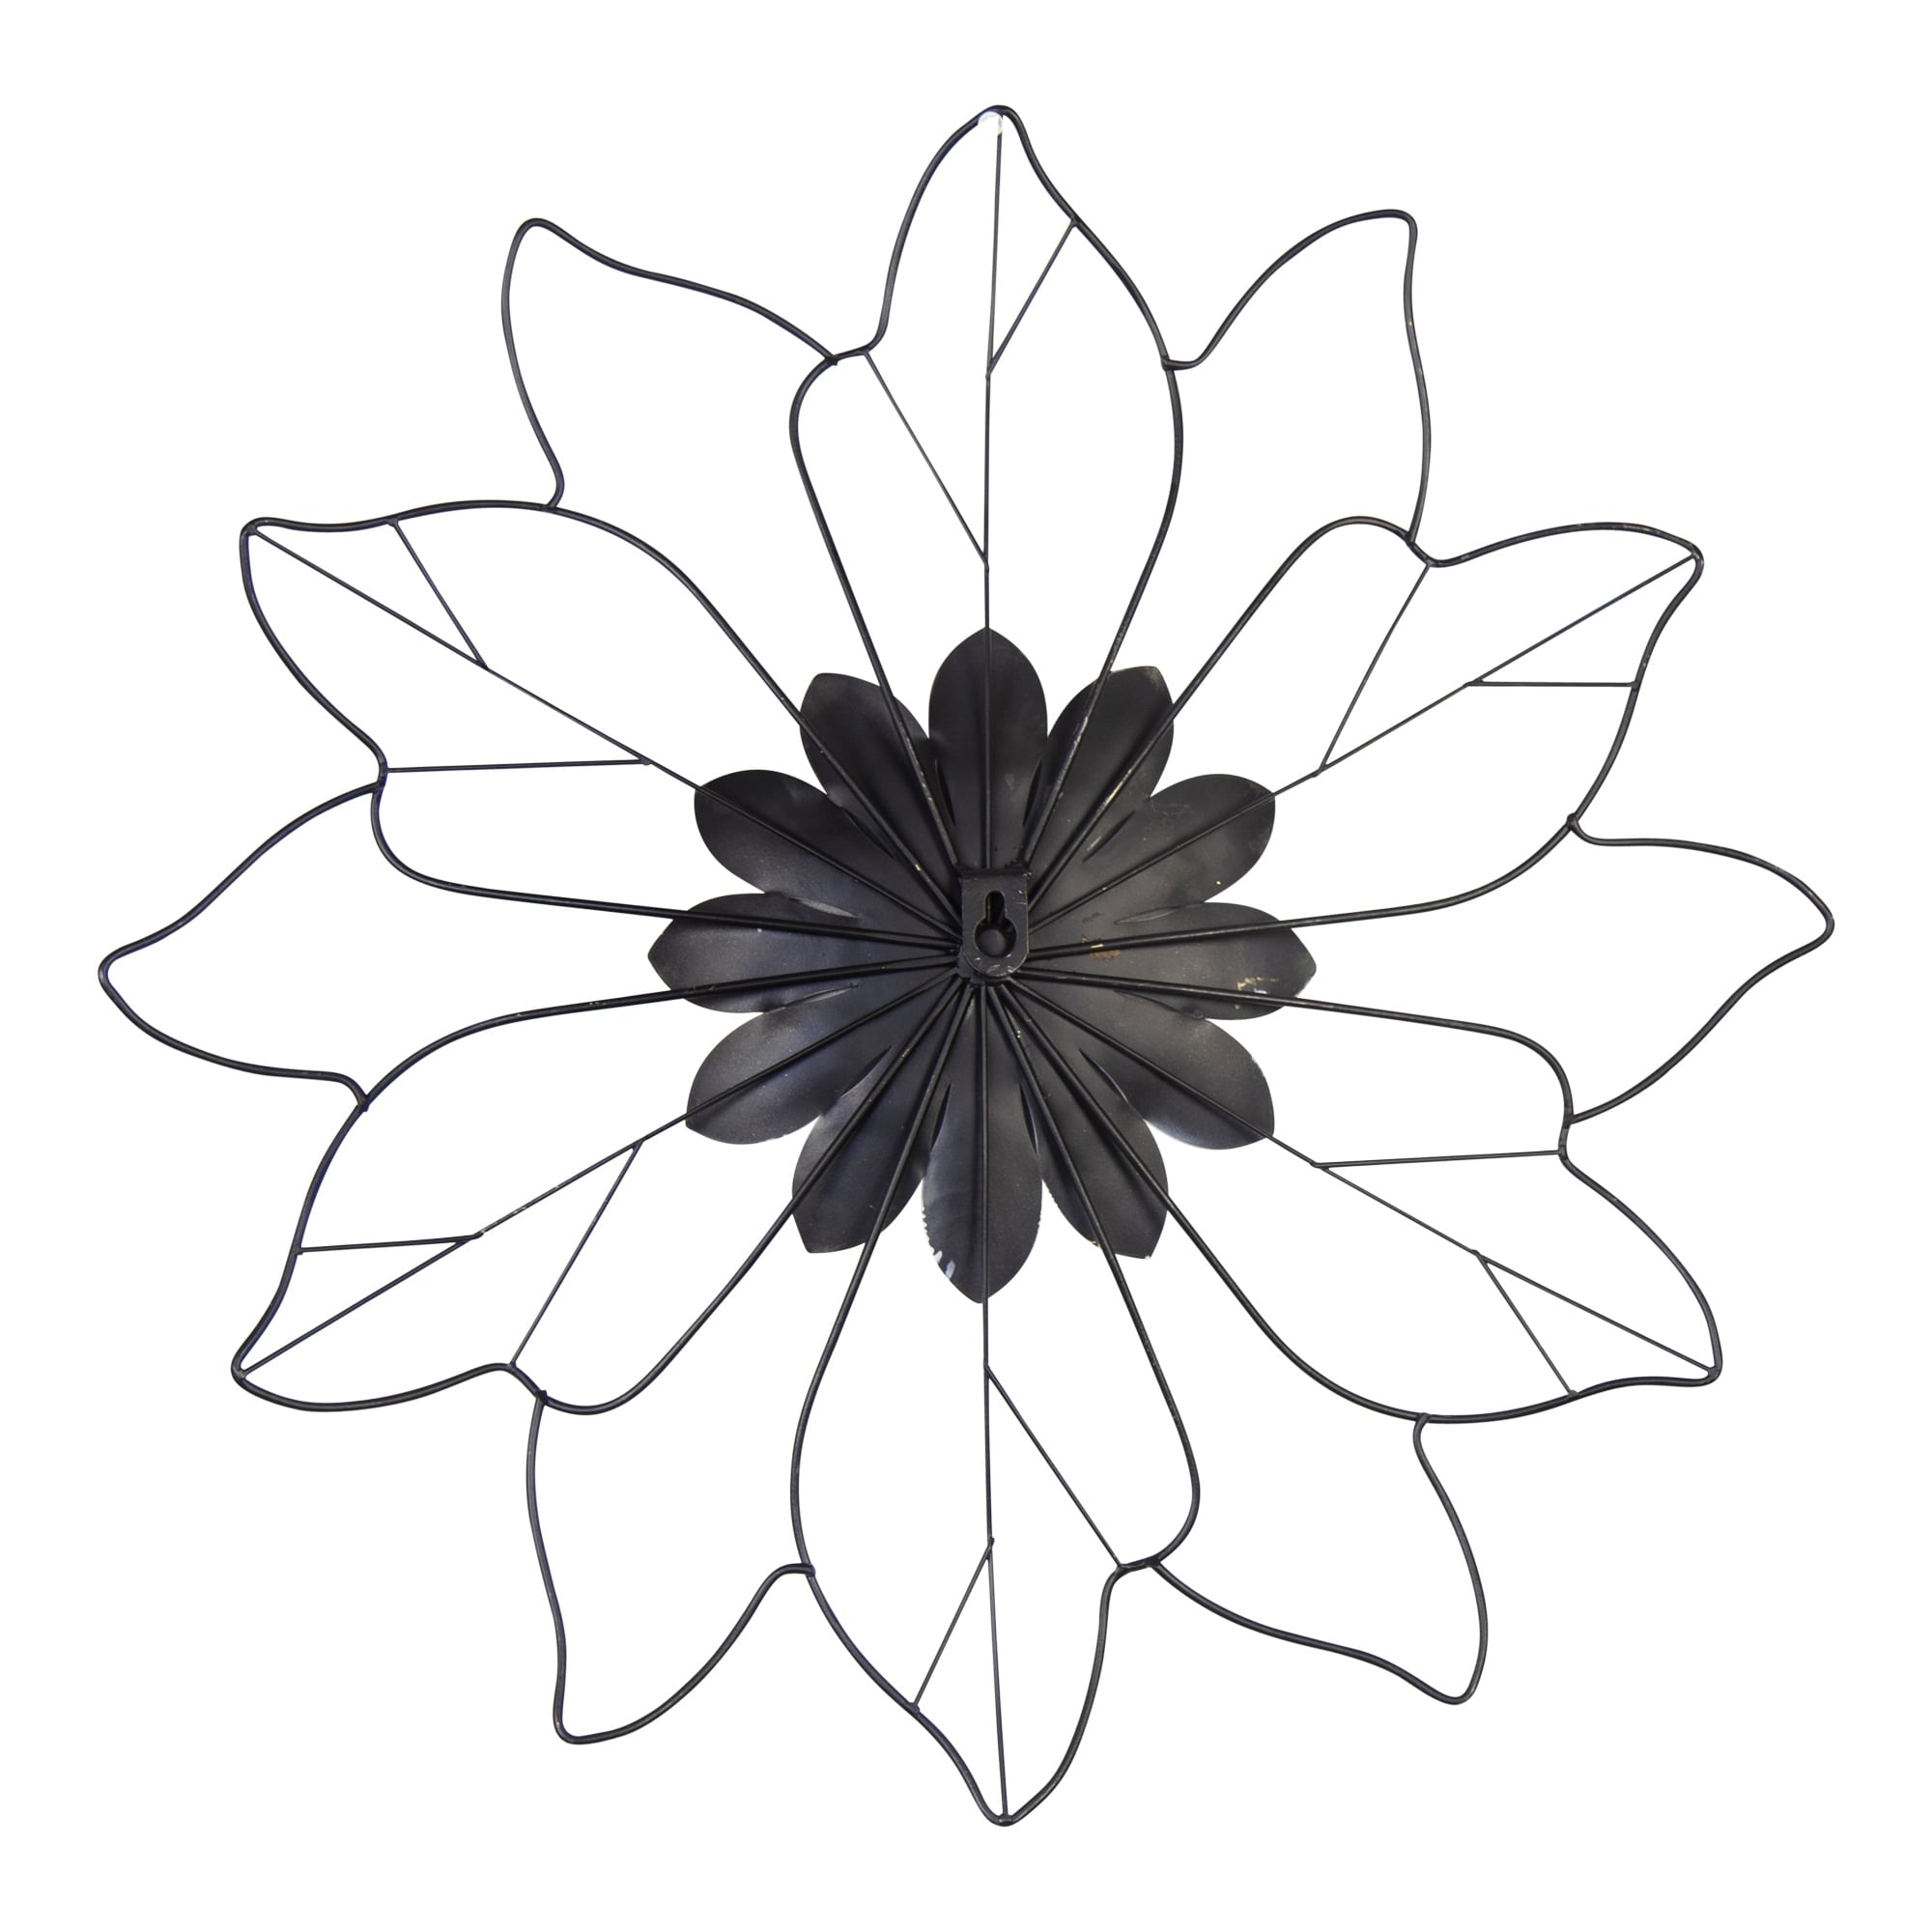 Shop Stratton Home Decor White Metal Outline Flower Wall Decor 16 50 X 1 25 X 16 25 On Sale Overstock 31945495